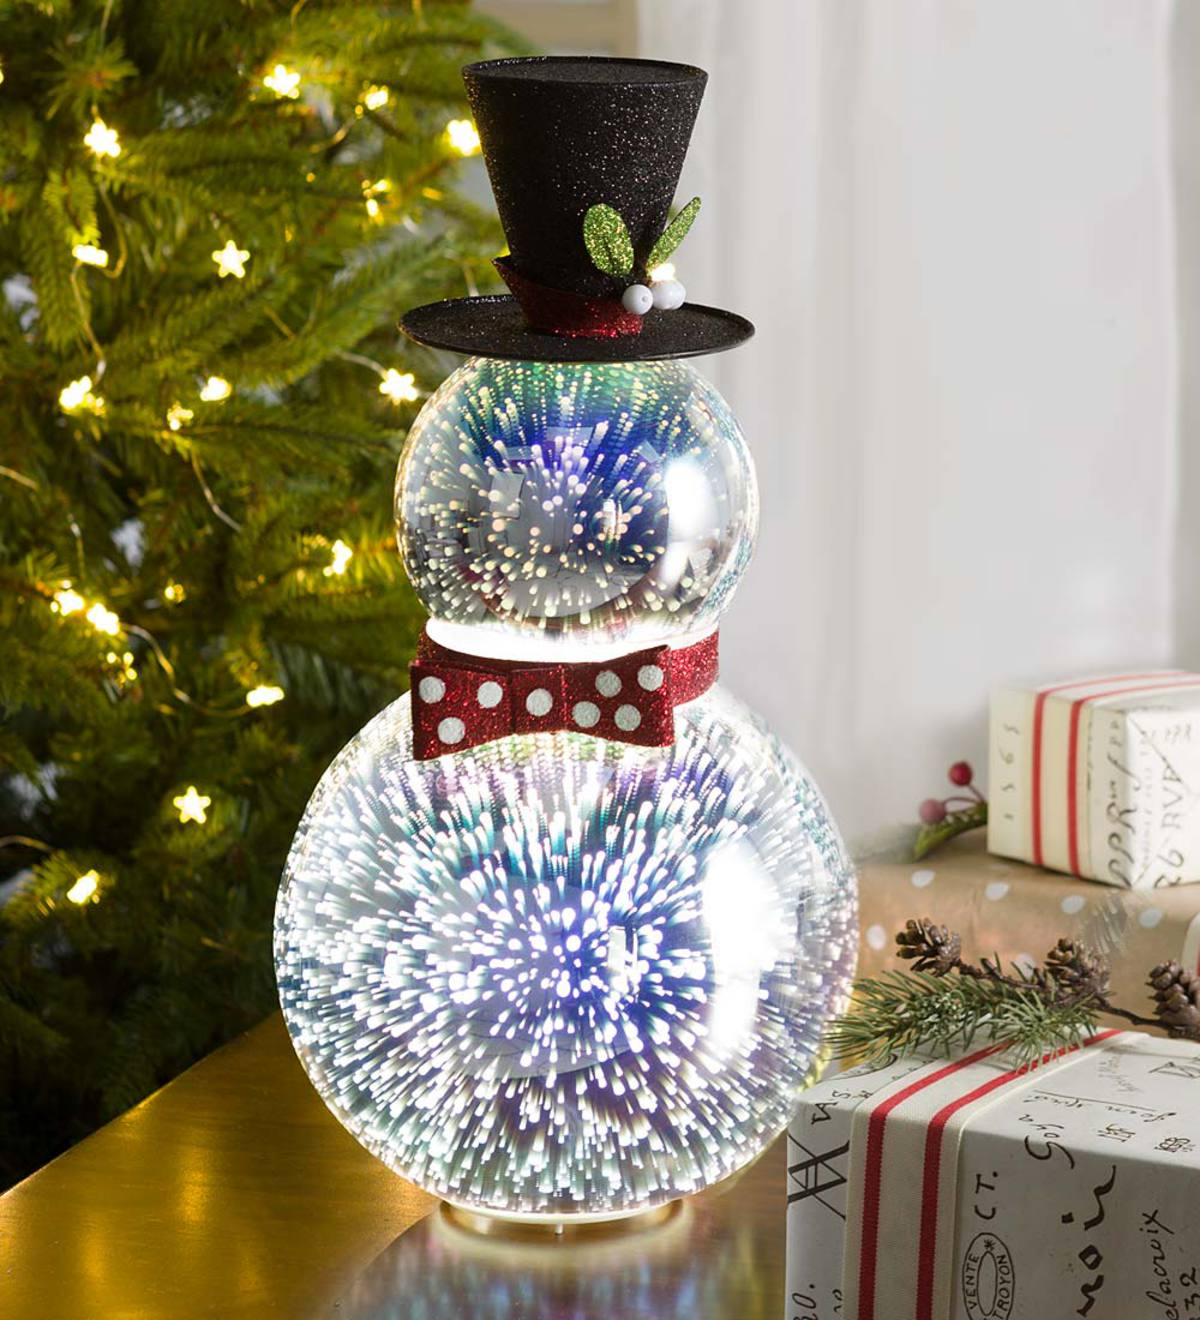 Indoor Christmas Party Decorations: Glass Snowman With 3D Light Effects, Short